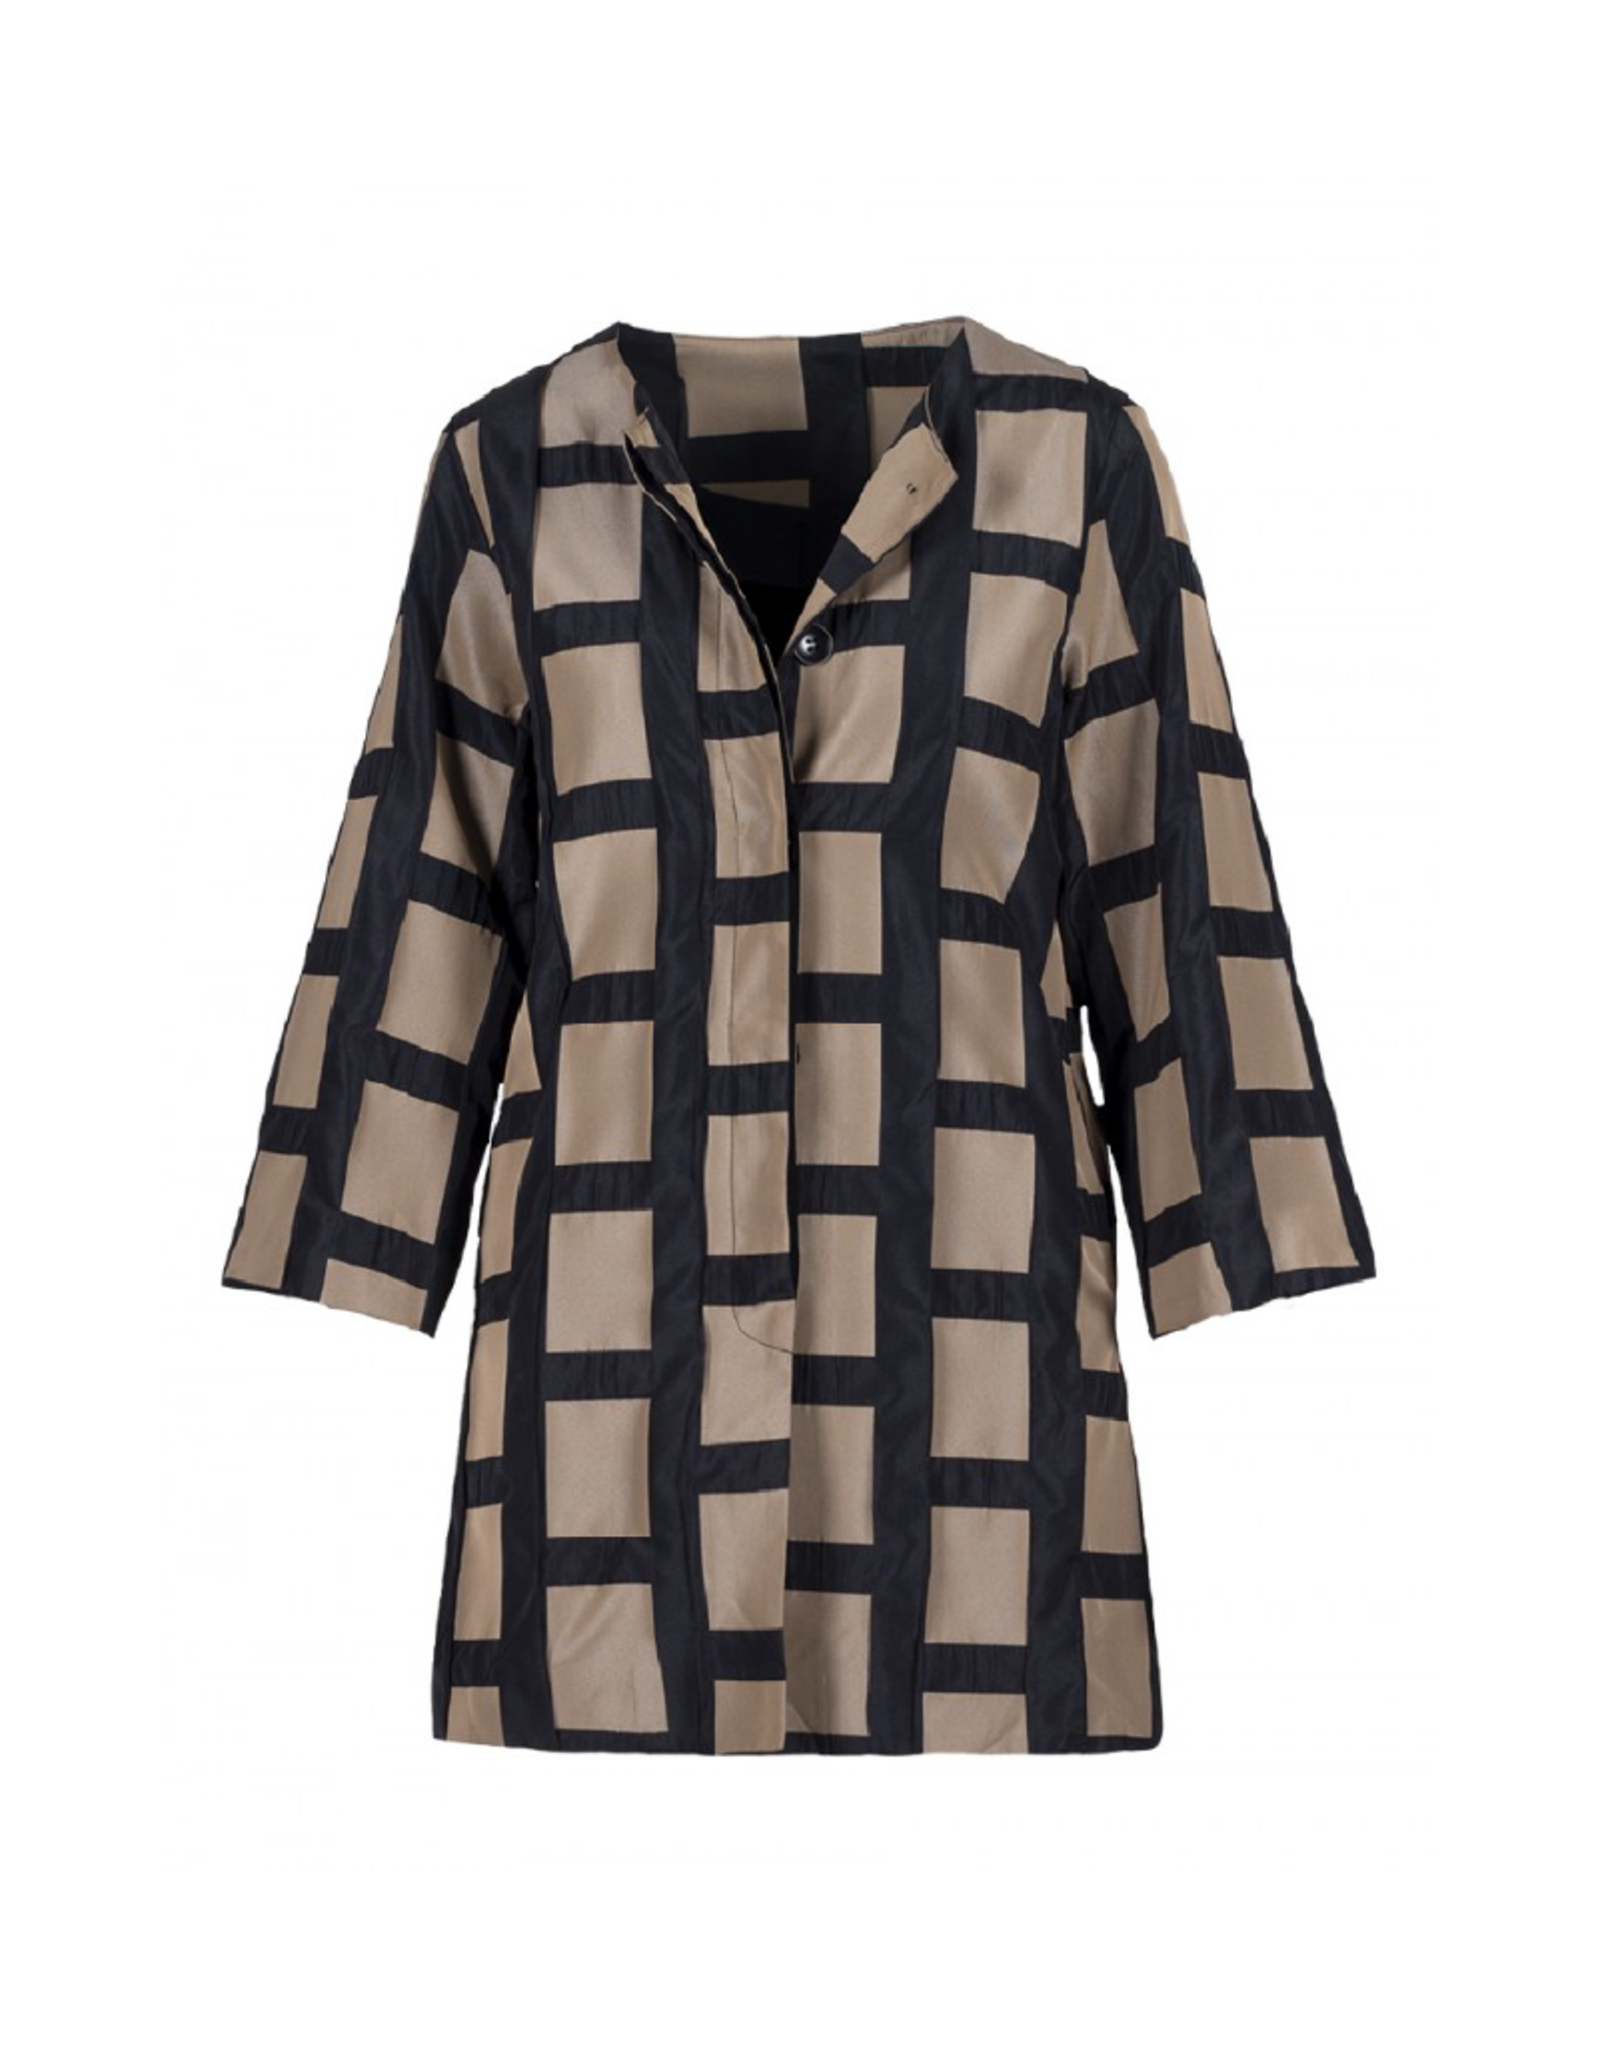 Anonyme Carla Button Up Completer